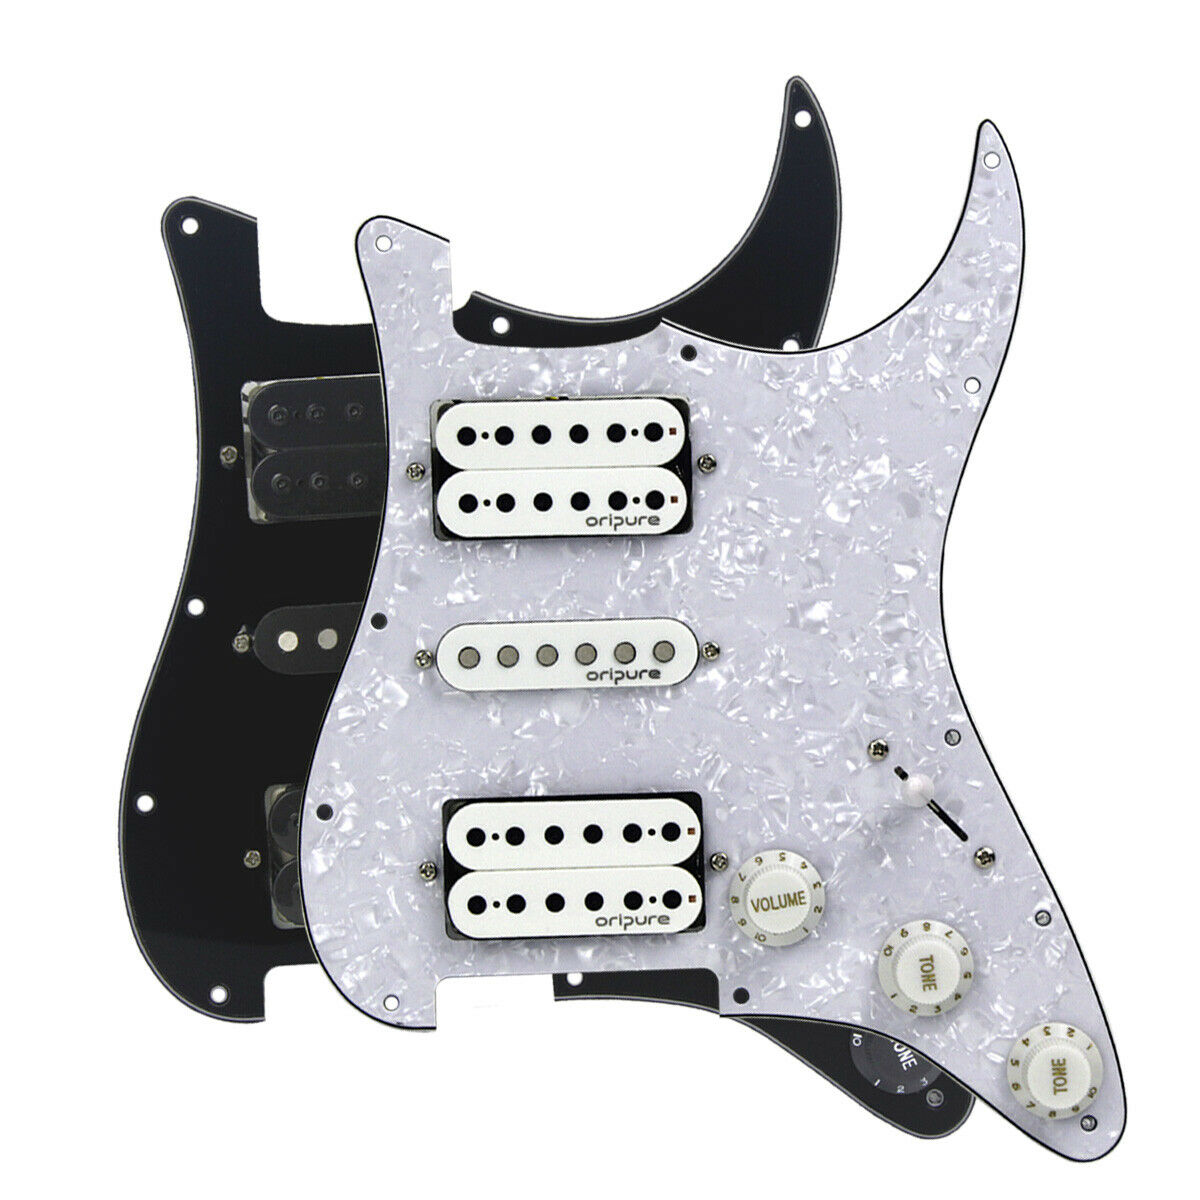 1Ply Aluminum Golden OriPure 11 Hole Prewired Strat Pickguard with Alnico 5 Single Coil Pickup Humbuckers Set for Fender American//Mexican Stratocaster Standard Modern Style